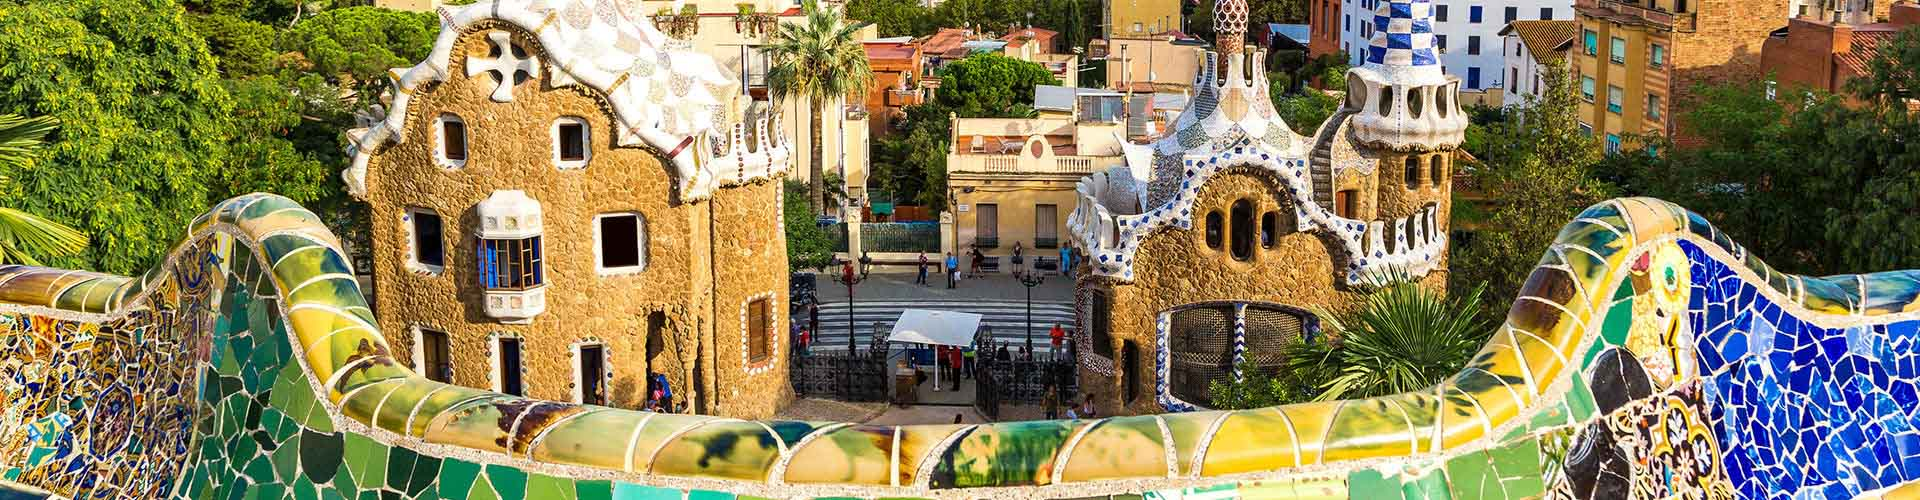 Barcelona – Hostels close to Park Güell. Maps for Barcelona, Photos and Reviews for each hostel in Barcelona.